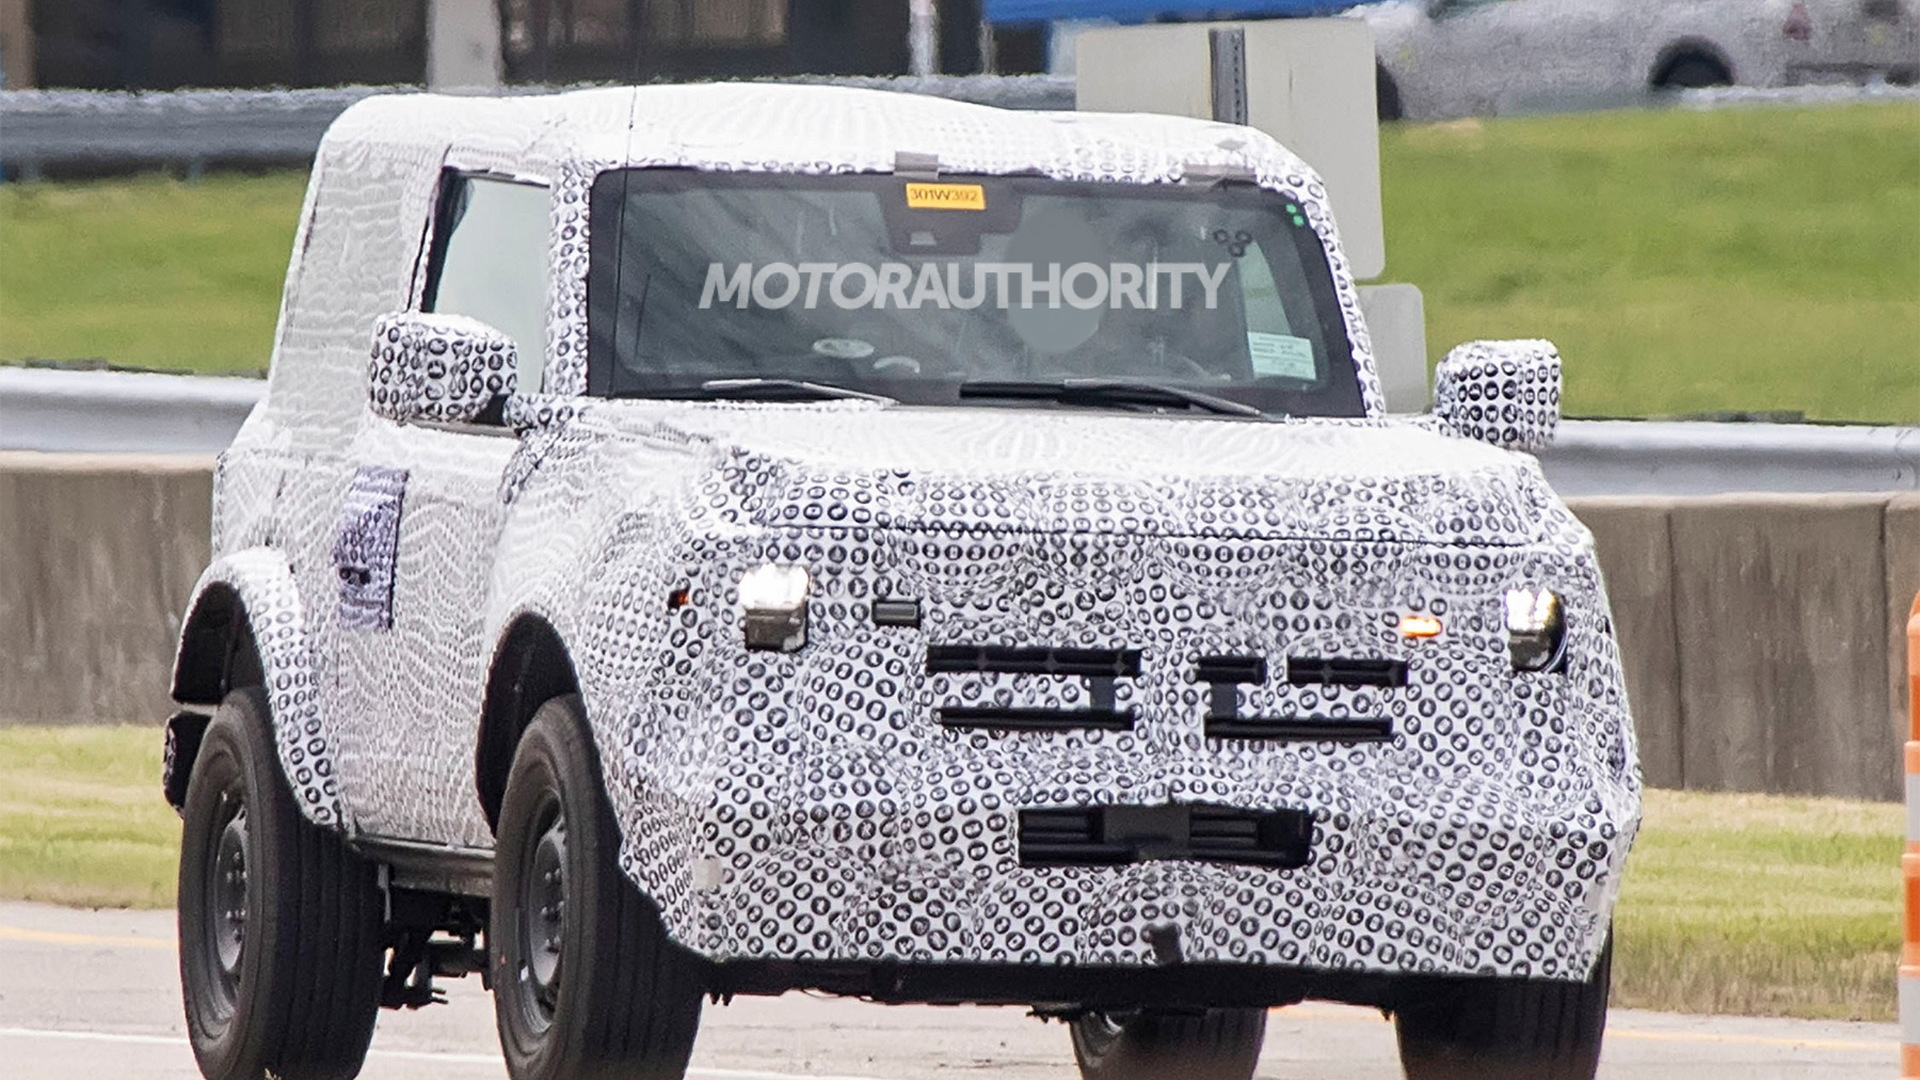 2021 Ford Bronco 3-door spy shots - Photo credit: S. Baldauf/SB-Medien